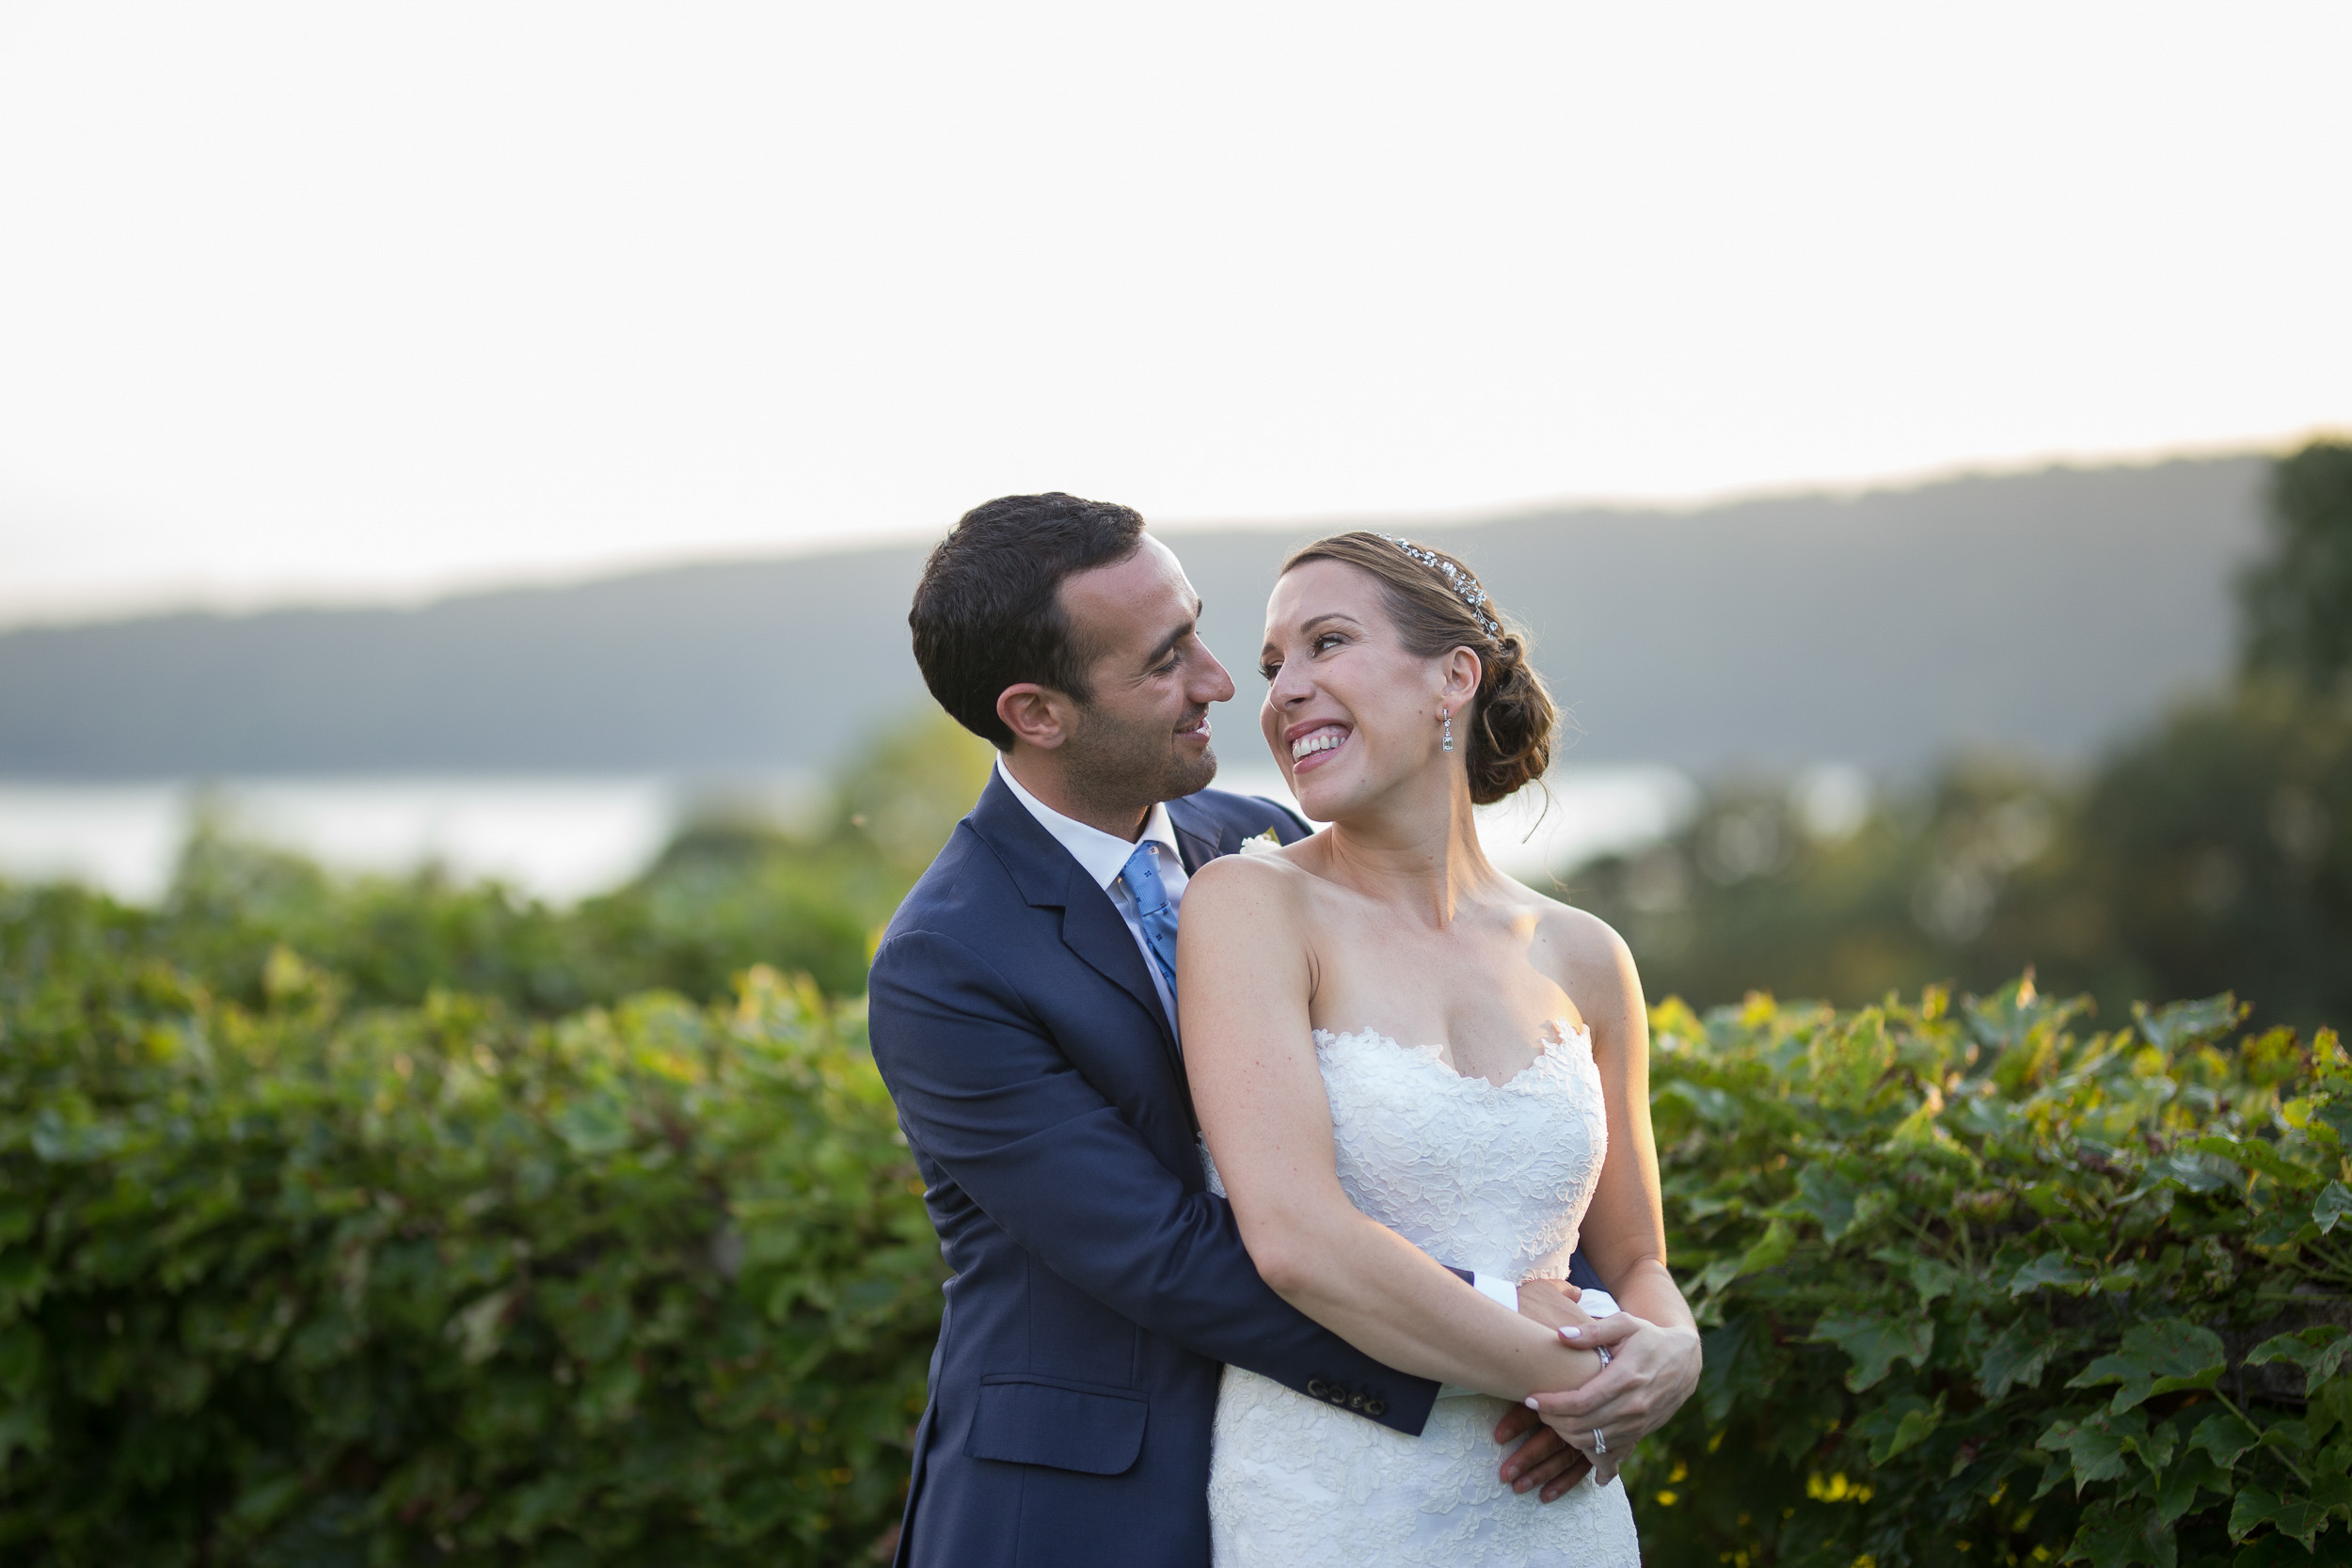 A Bronx, New York Wedding at Wave Hill in Riverdale